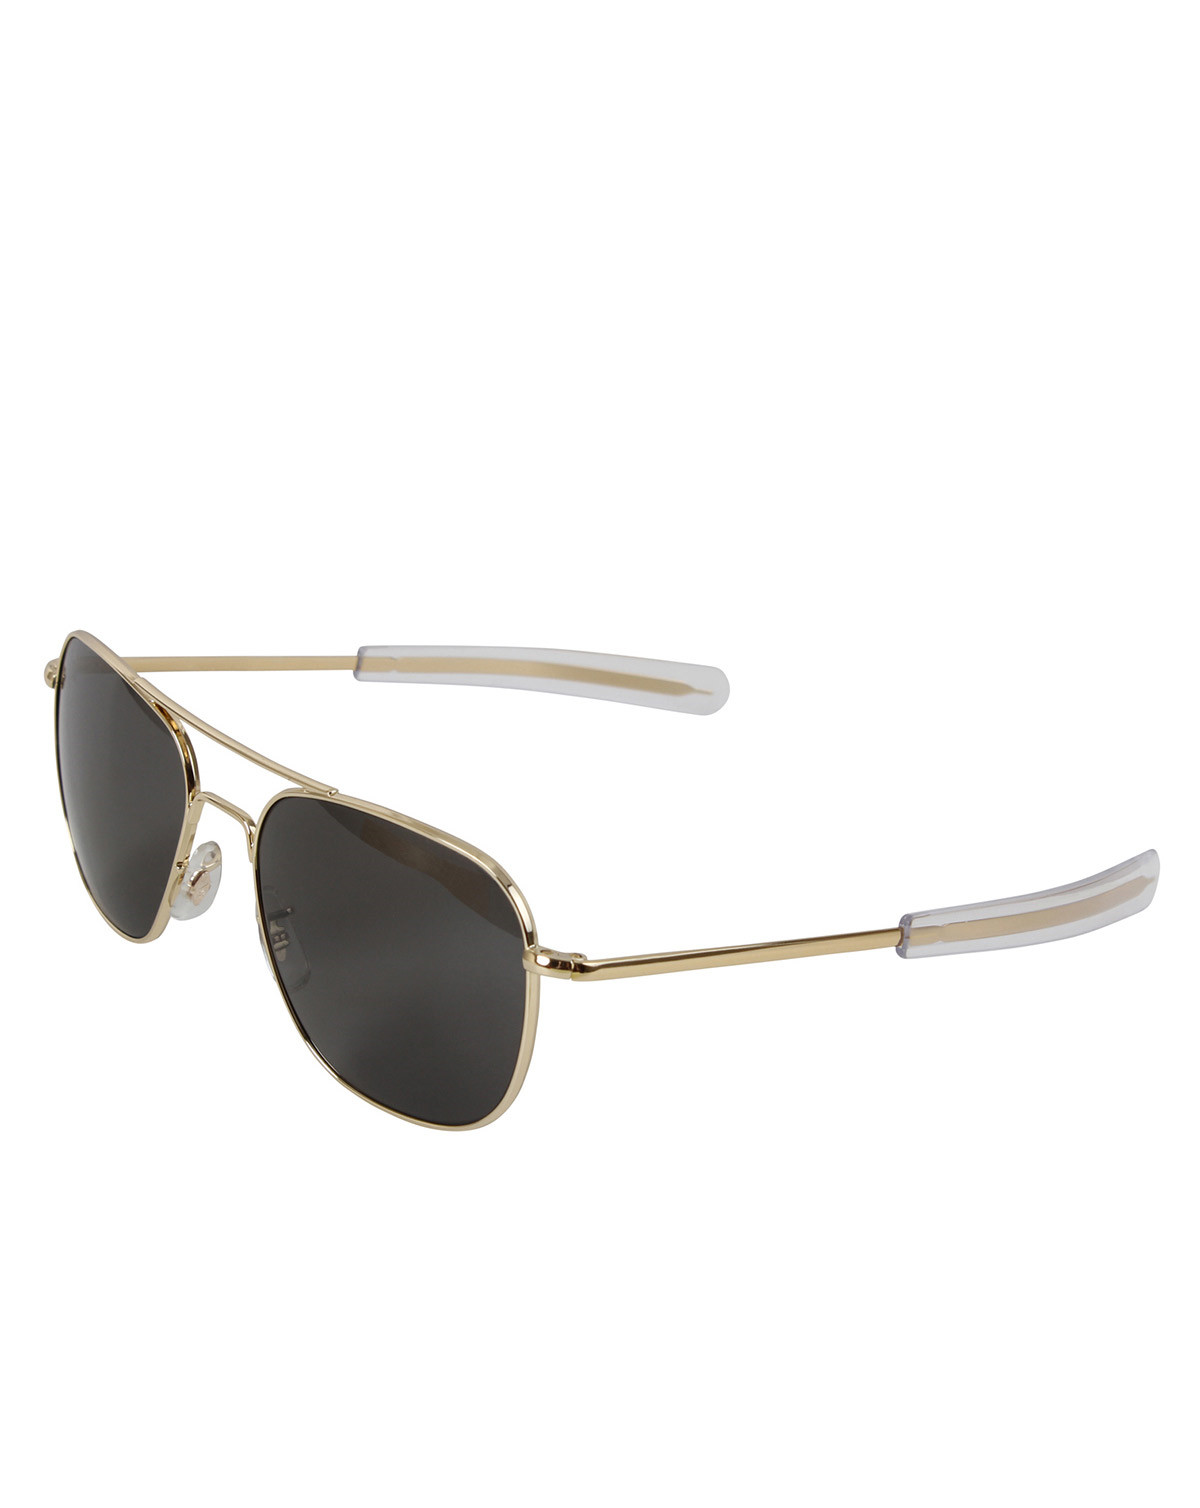 Image of   Rothco Pilots Solbriller American Optical Original (Guld m. Gråt Glas, One Size)